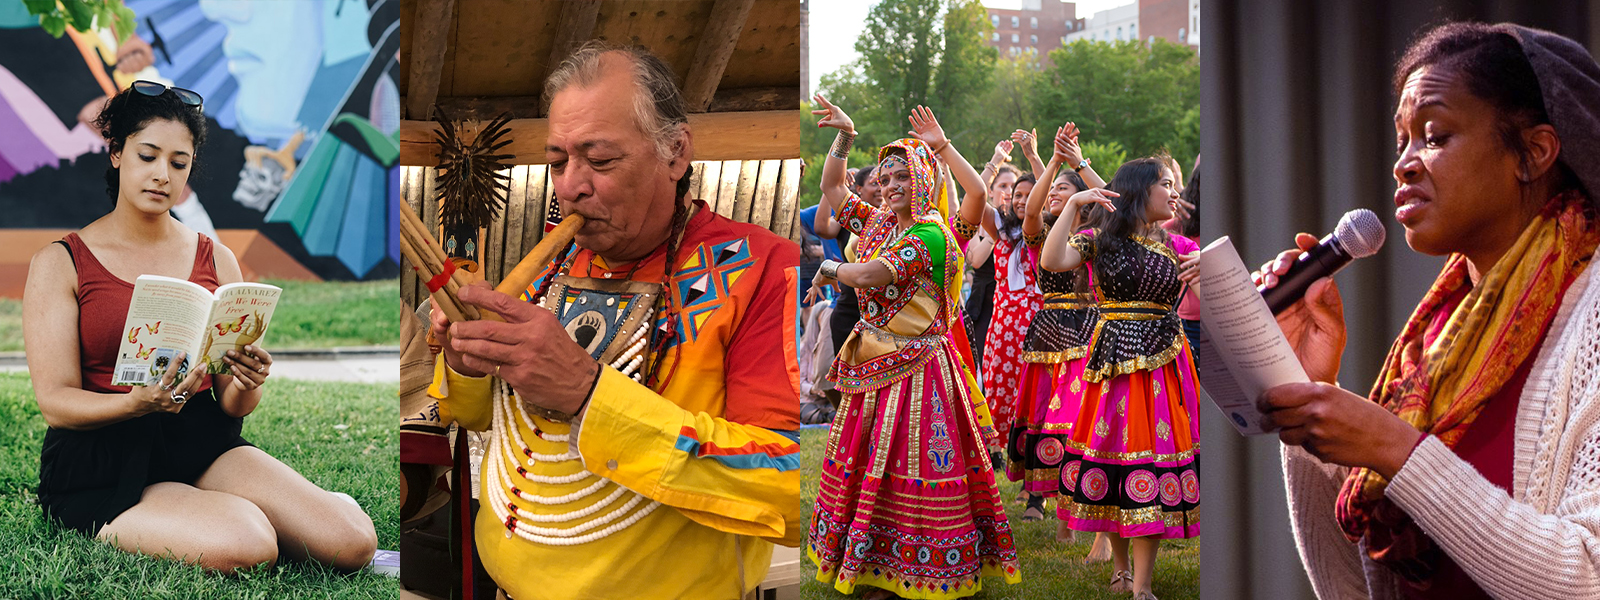 Photo Credits (L to R): 1) A NEA Big Read participant reads In the Time of the Butterflies by Julia Alvarez, photo by Lighthouse Writers Workshop; 2) Musician Keith Bear at the Earth Lodge Village on the Fort Berthold Reservation, photo by Shigeyo Henriquez; Participants at the New Haven International Festival of Arts, photo by Shannon Mykins; 4) A woman reads from a book on stage as part of an NEA Big Read program through Vigo County Public Library, photo by Kim McMurray.